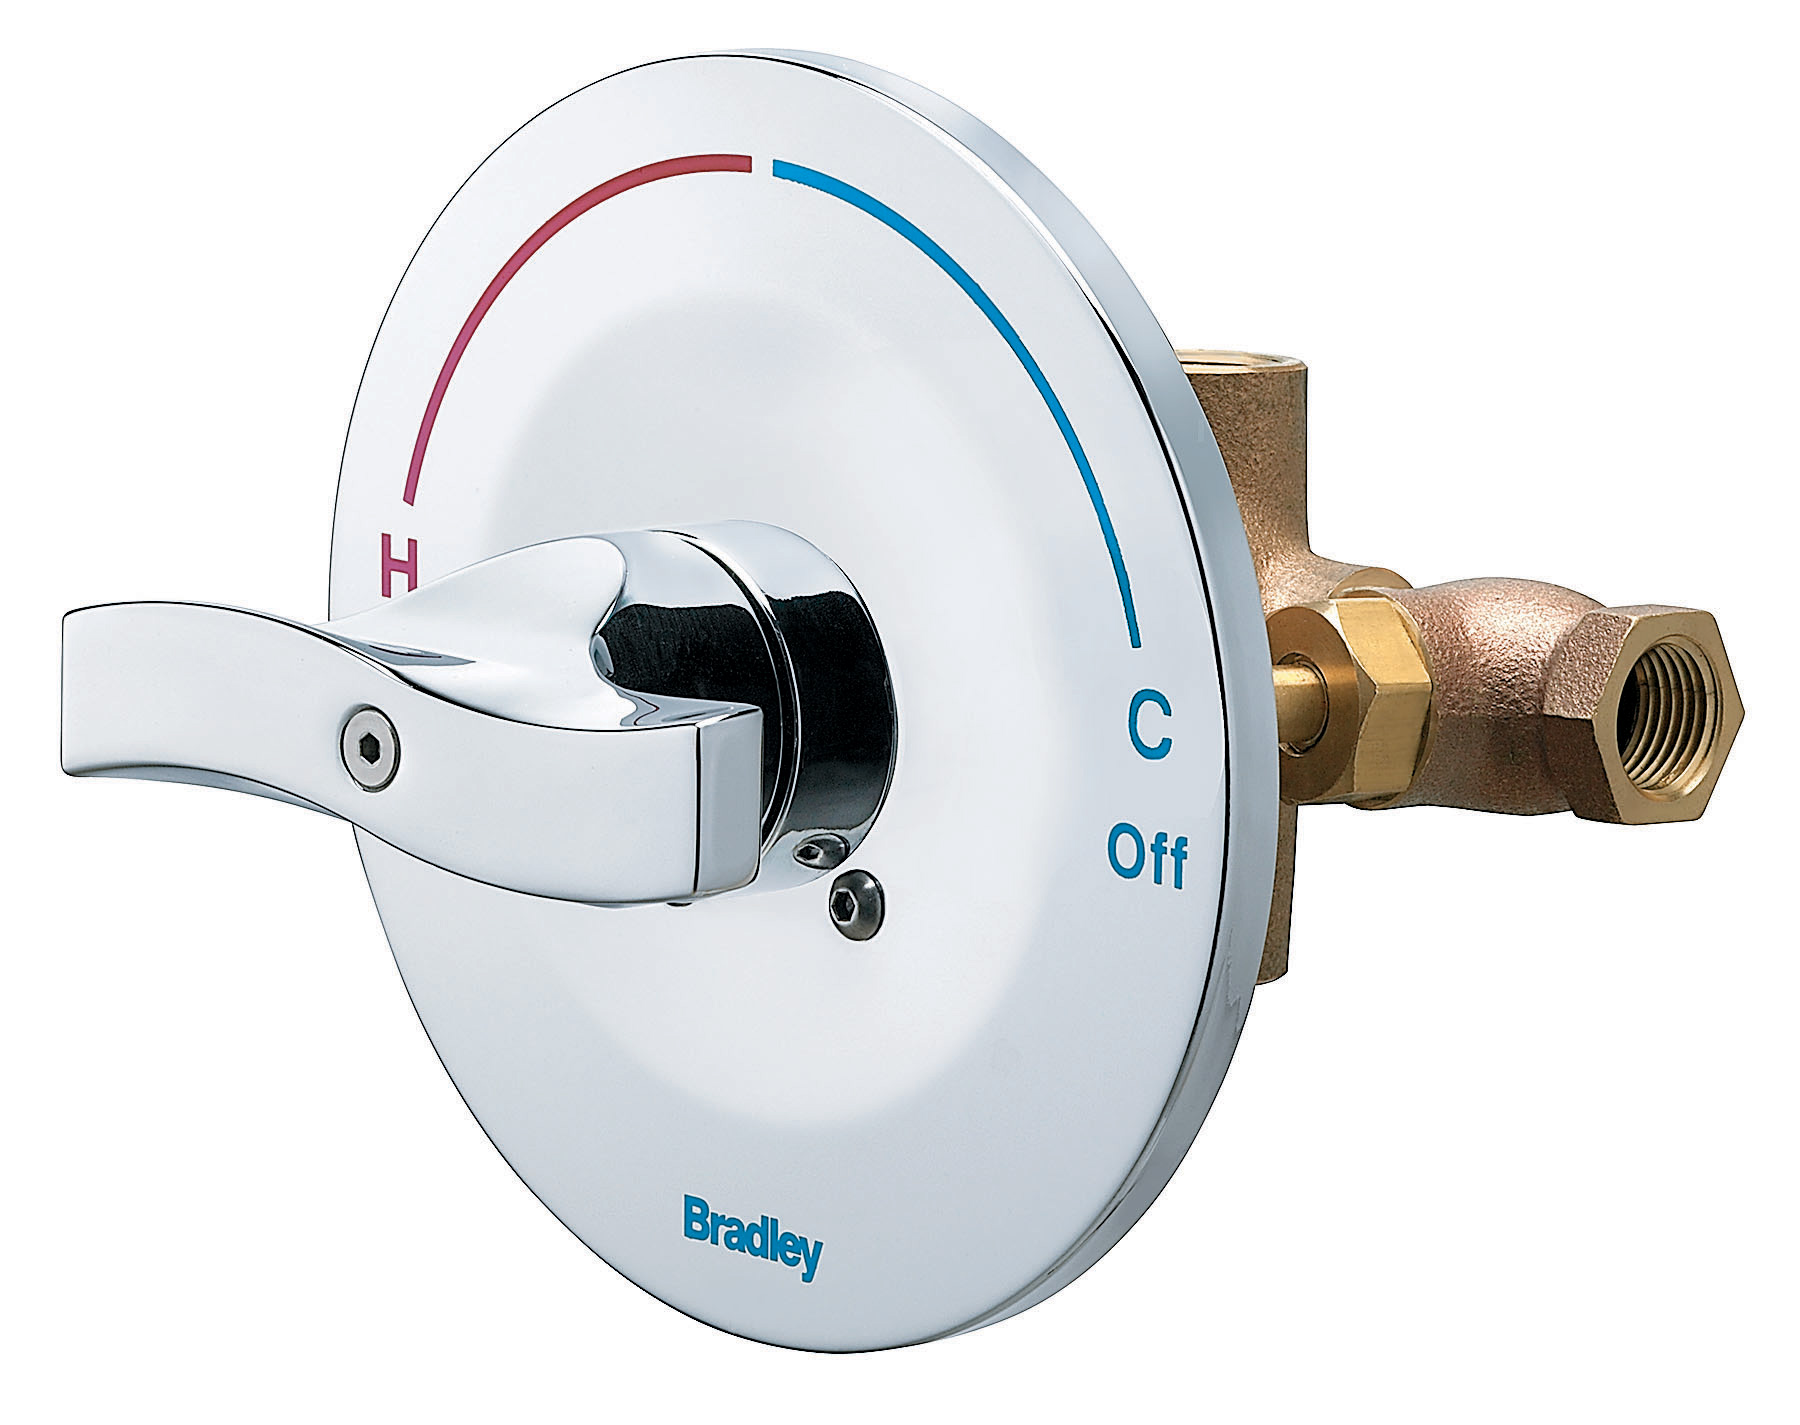 Equa flo c5 pressure balancing valve bradley corporation - Shower controls ...